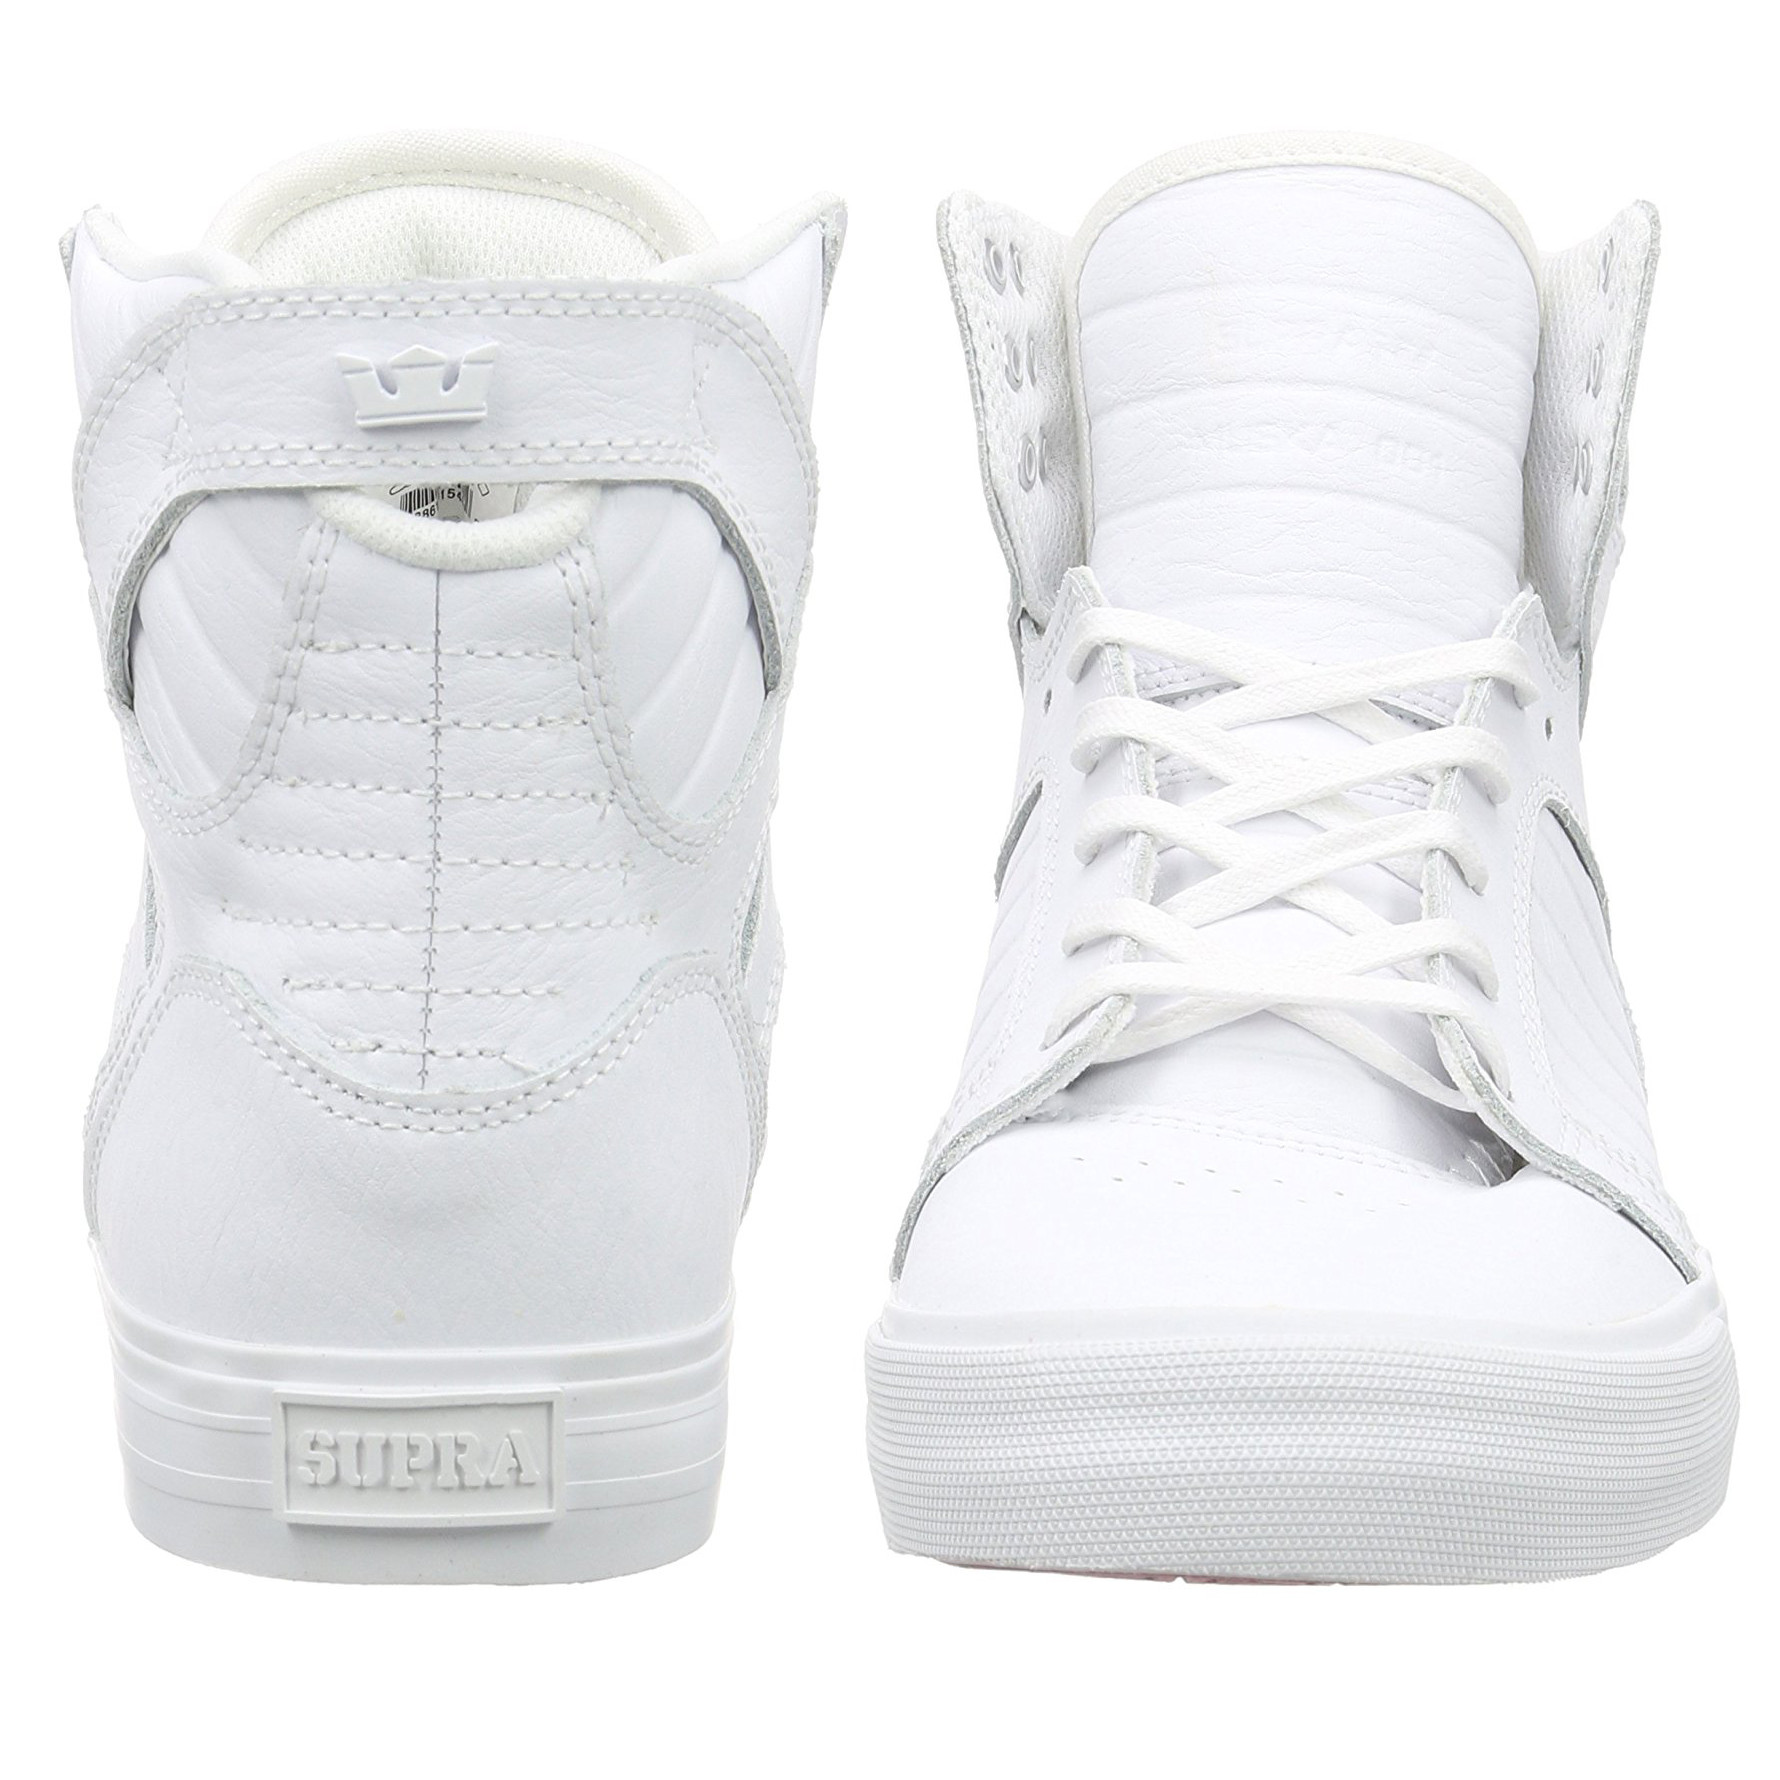 8d090e00e8a5 SUPRA Men s Skytop Leather Shoes Trainers White Red